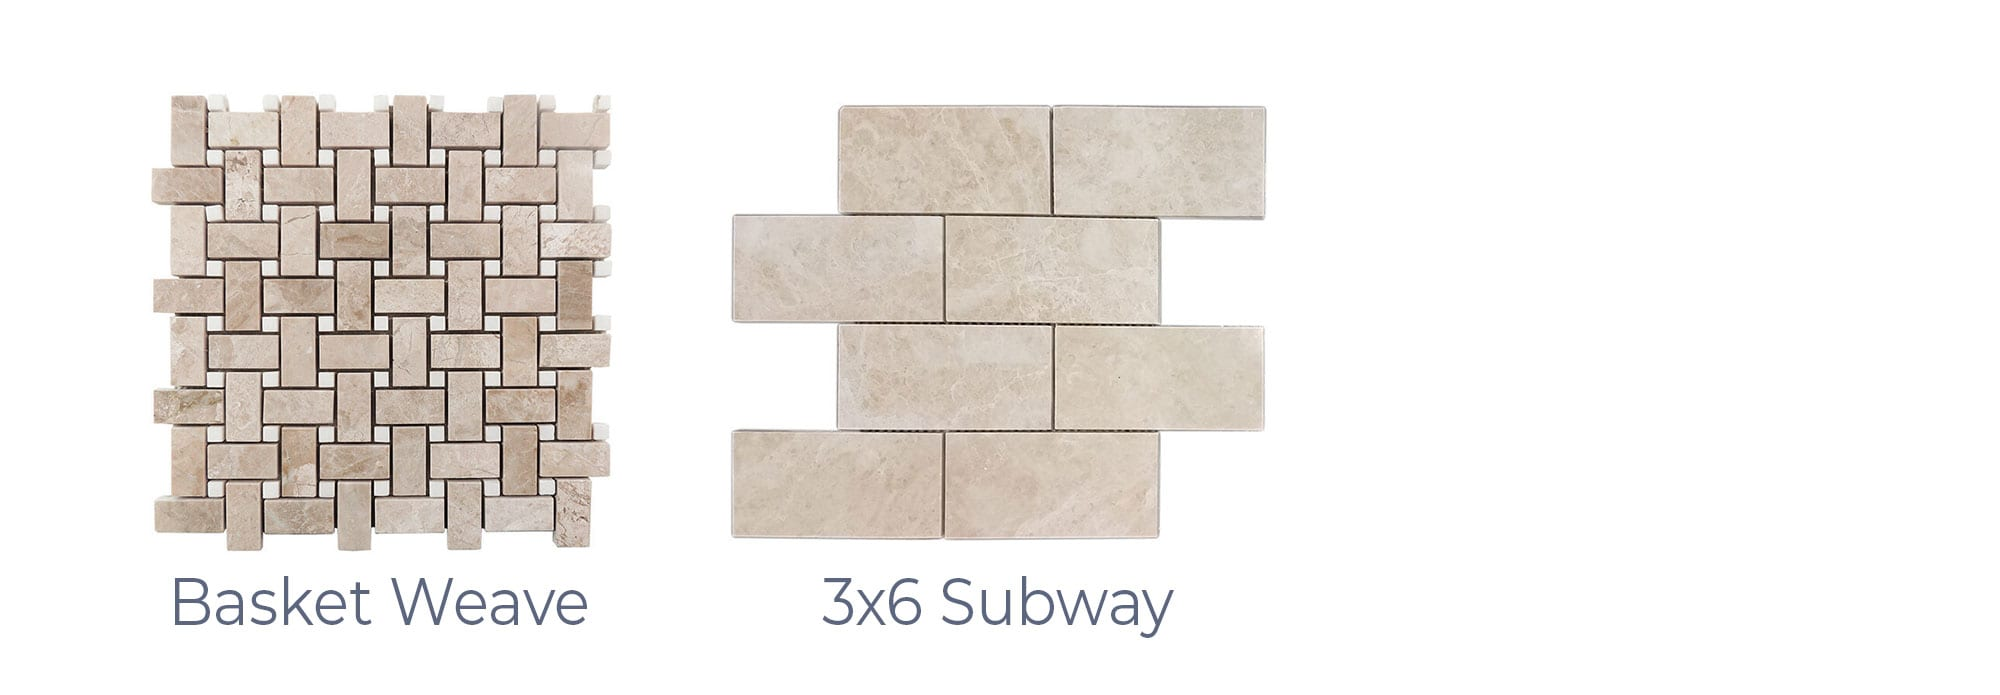 Stoneline-Group-Fantastic-Royal-Marble-Collection-Marble-Mosaic-Basket-Weave-3×6-Subway-Pictures-d